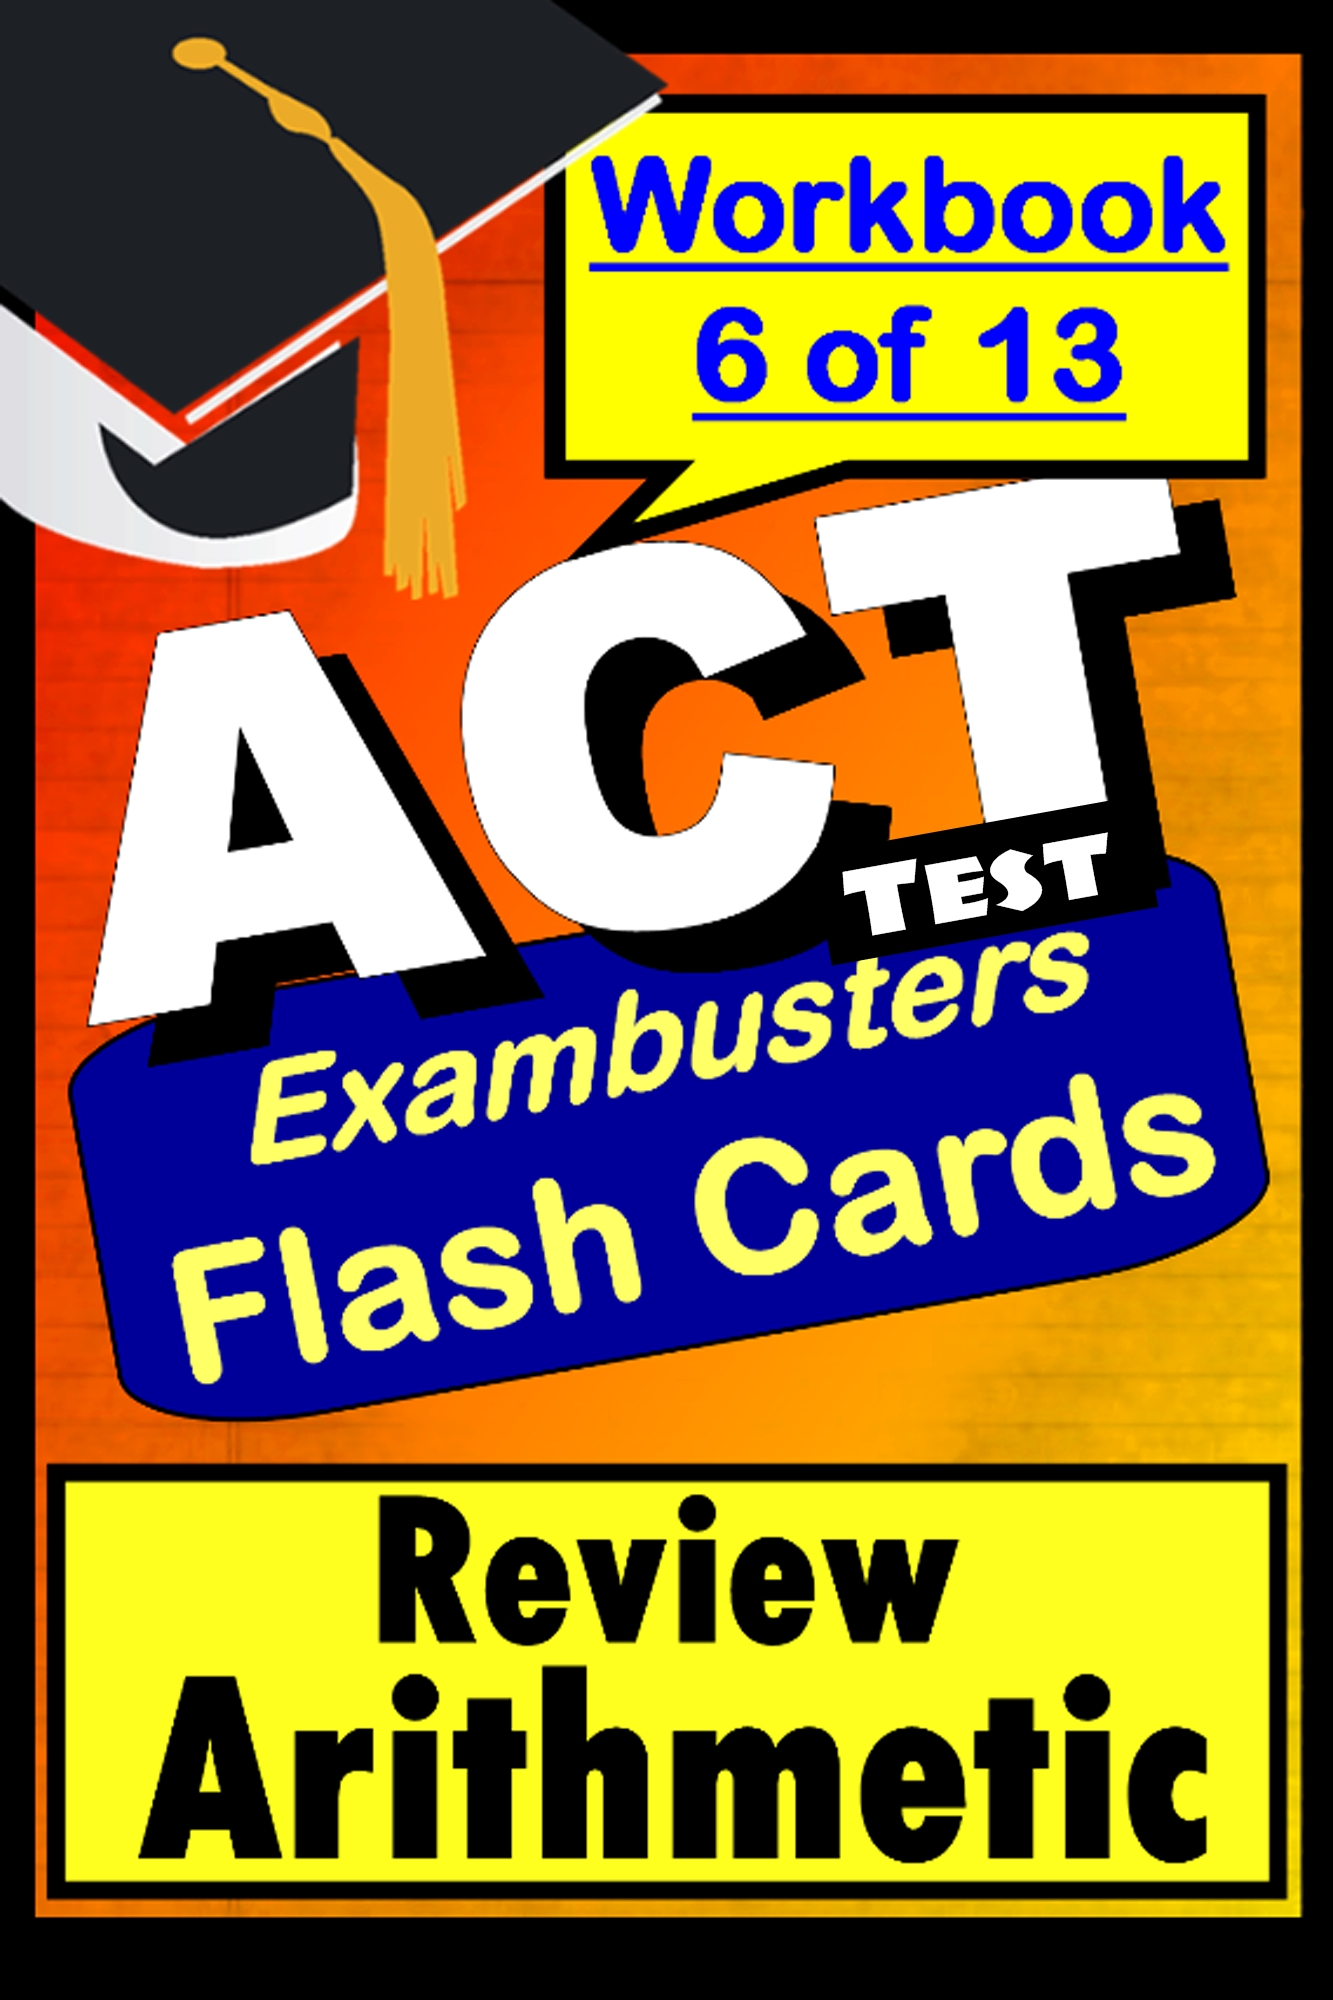 ACT Test Arithmetic--Exambusters Flashcards--Workbook 6 of 13